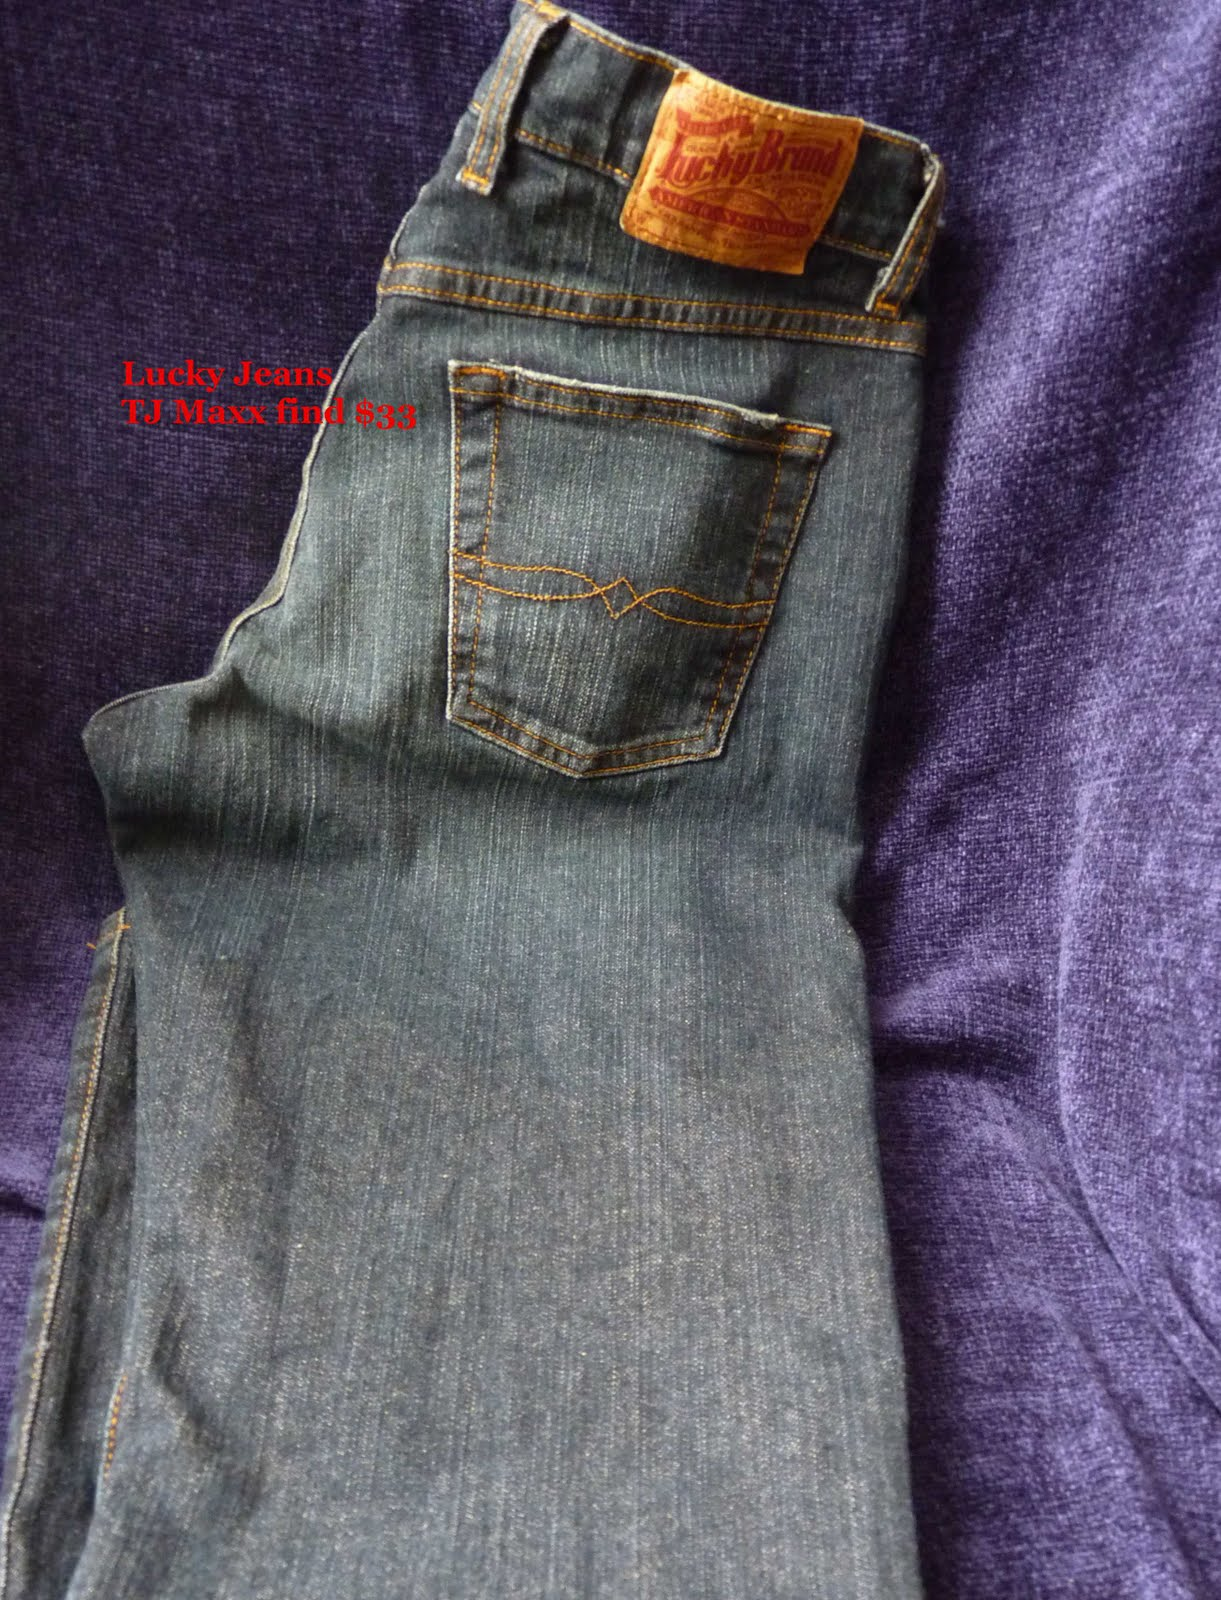 a4ccb872f7d Over the summer I had found a pair of my favorite Levi s 515 that fit  nicely since losing weight for  15- so I have started checking jeans more  often now.